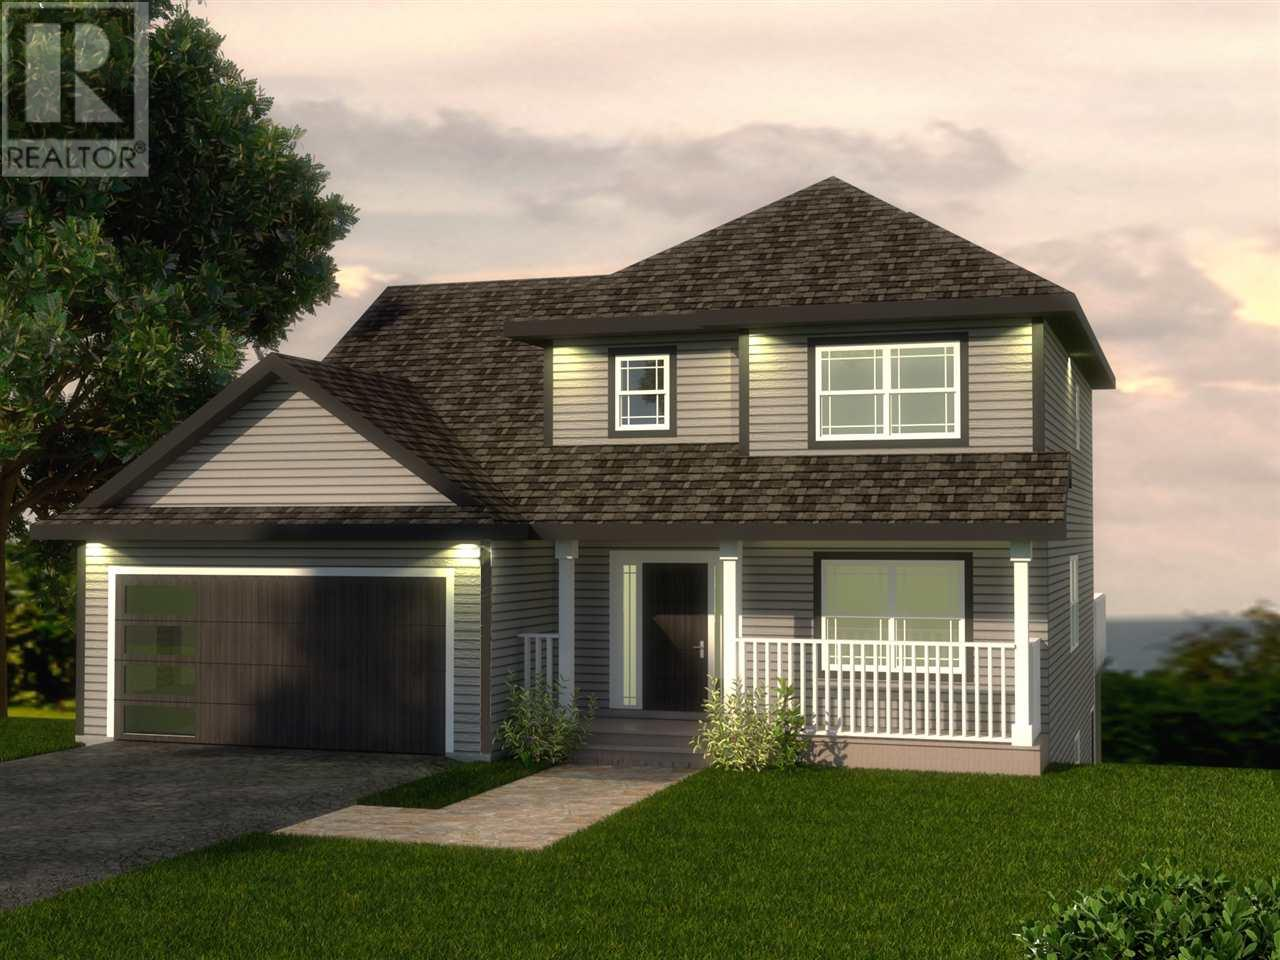 Lot 216 182 Thicket Drive, Brookside, Brookside, NS, B3T0B6